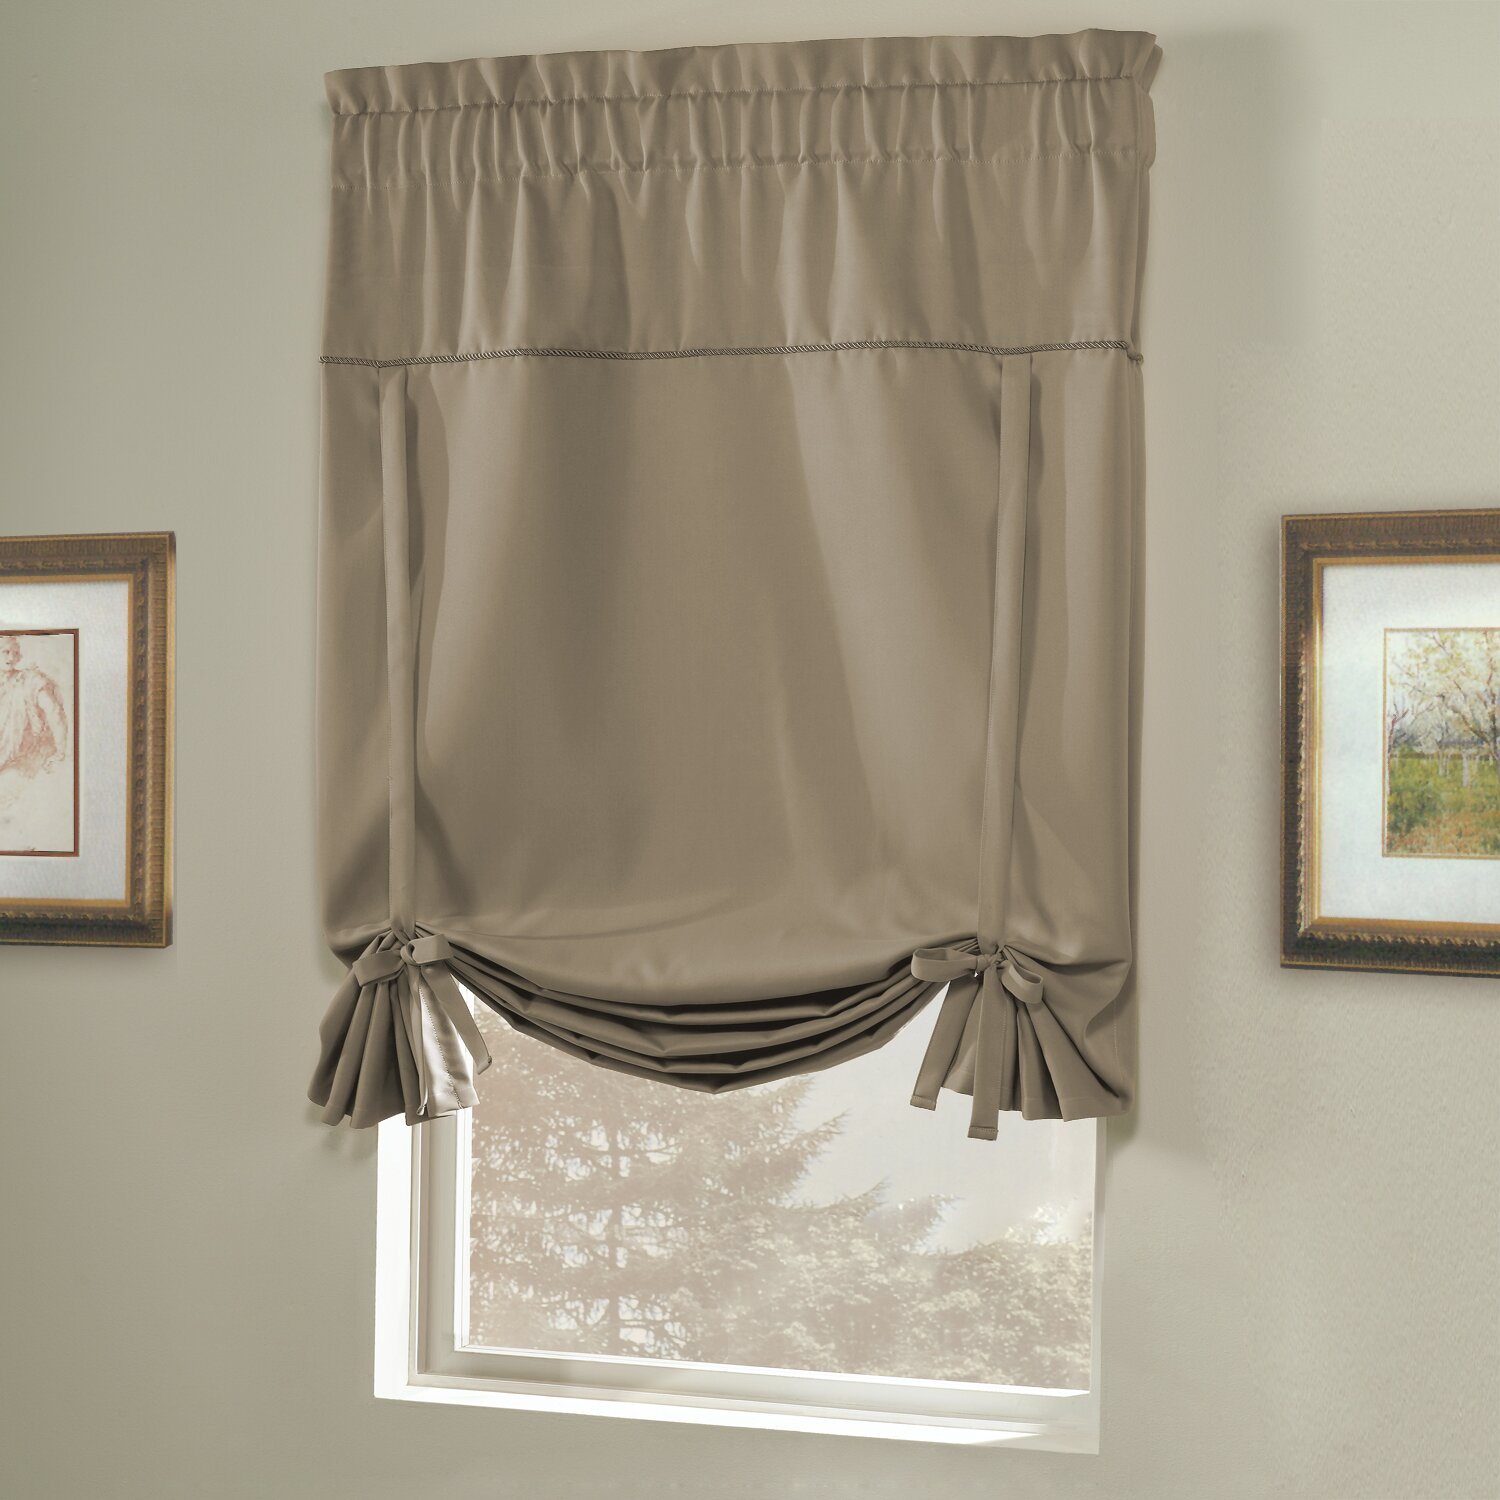 united curtain co blackstone tie up shade reviews